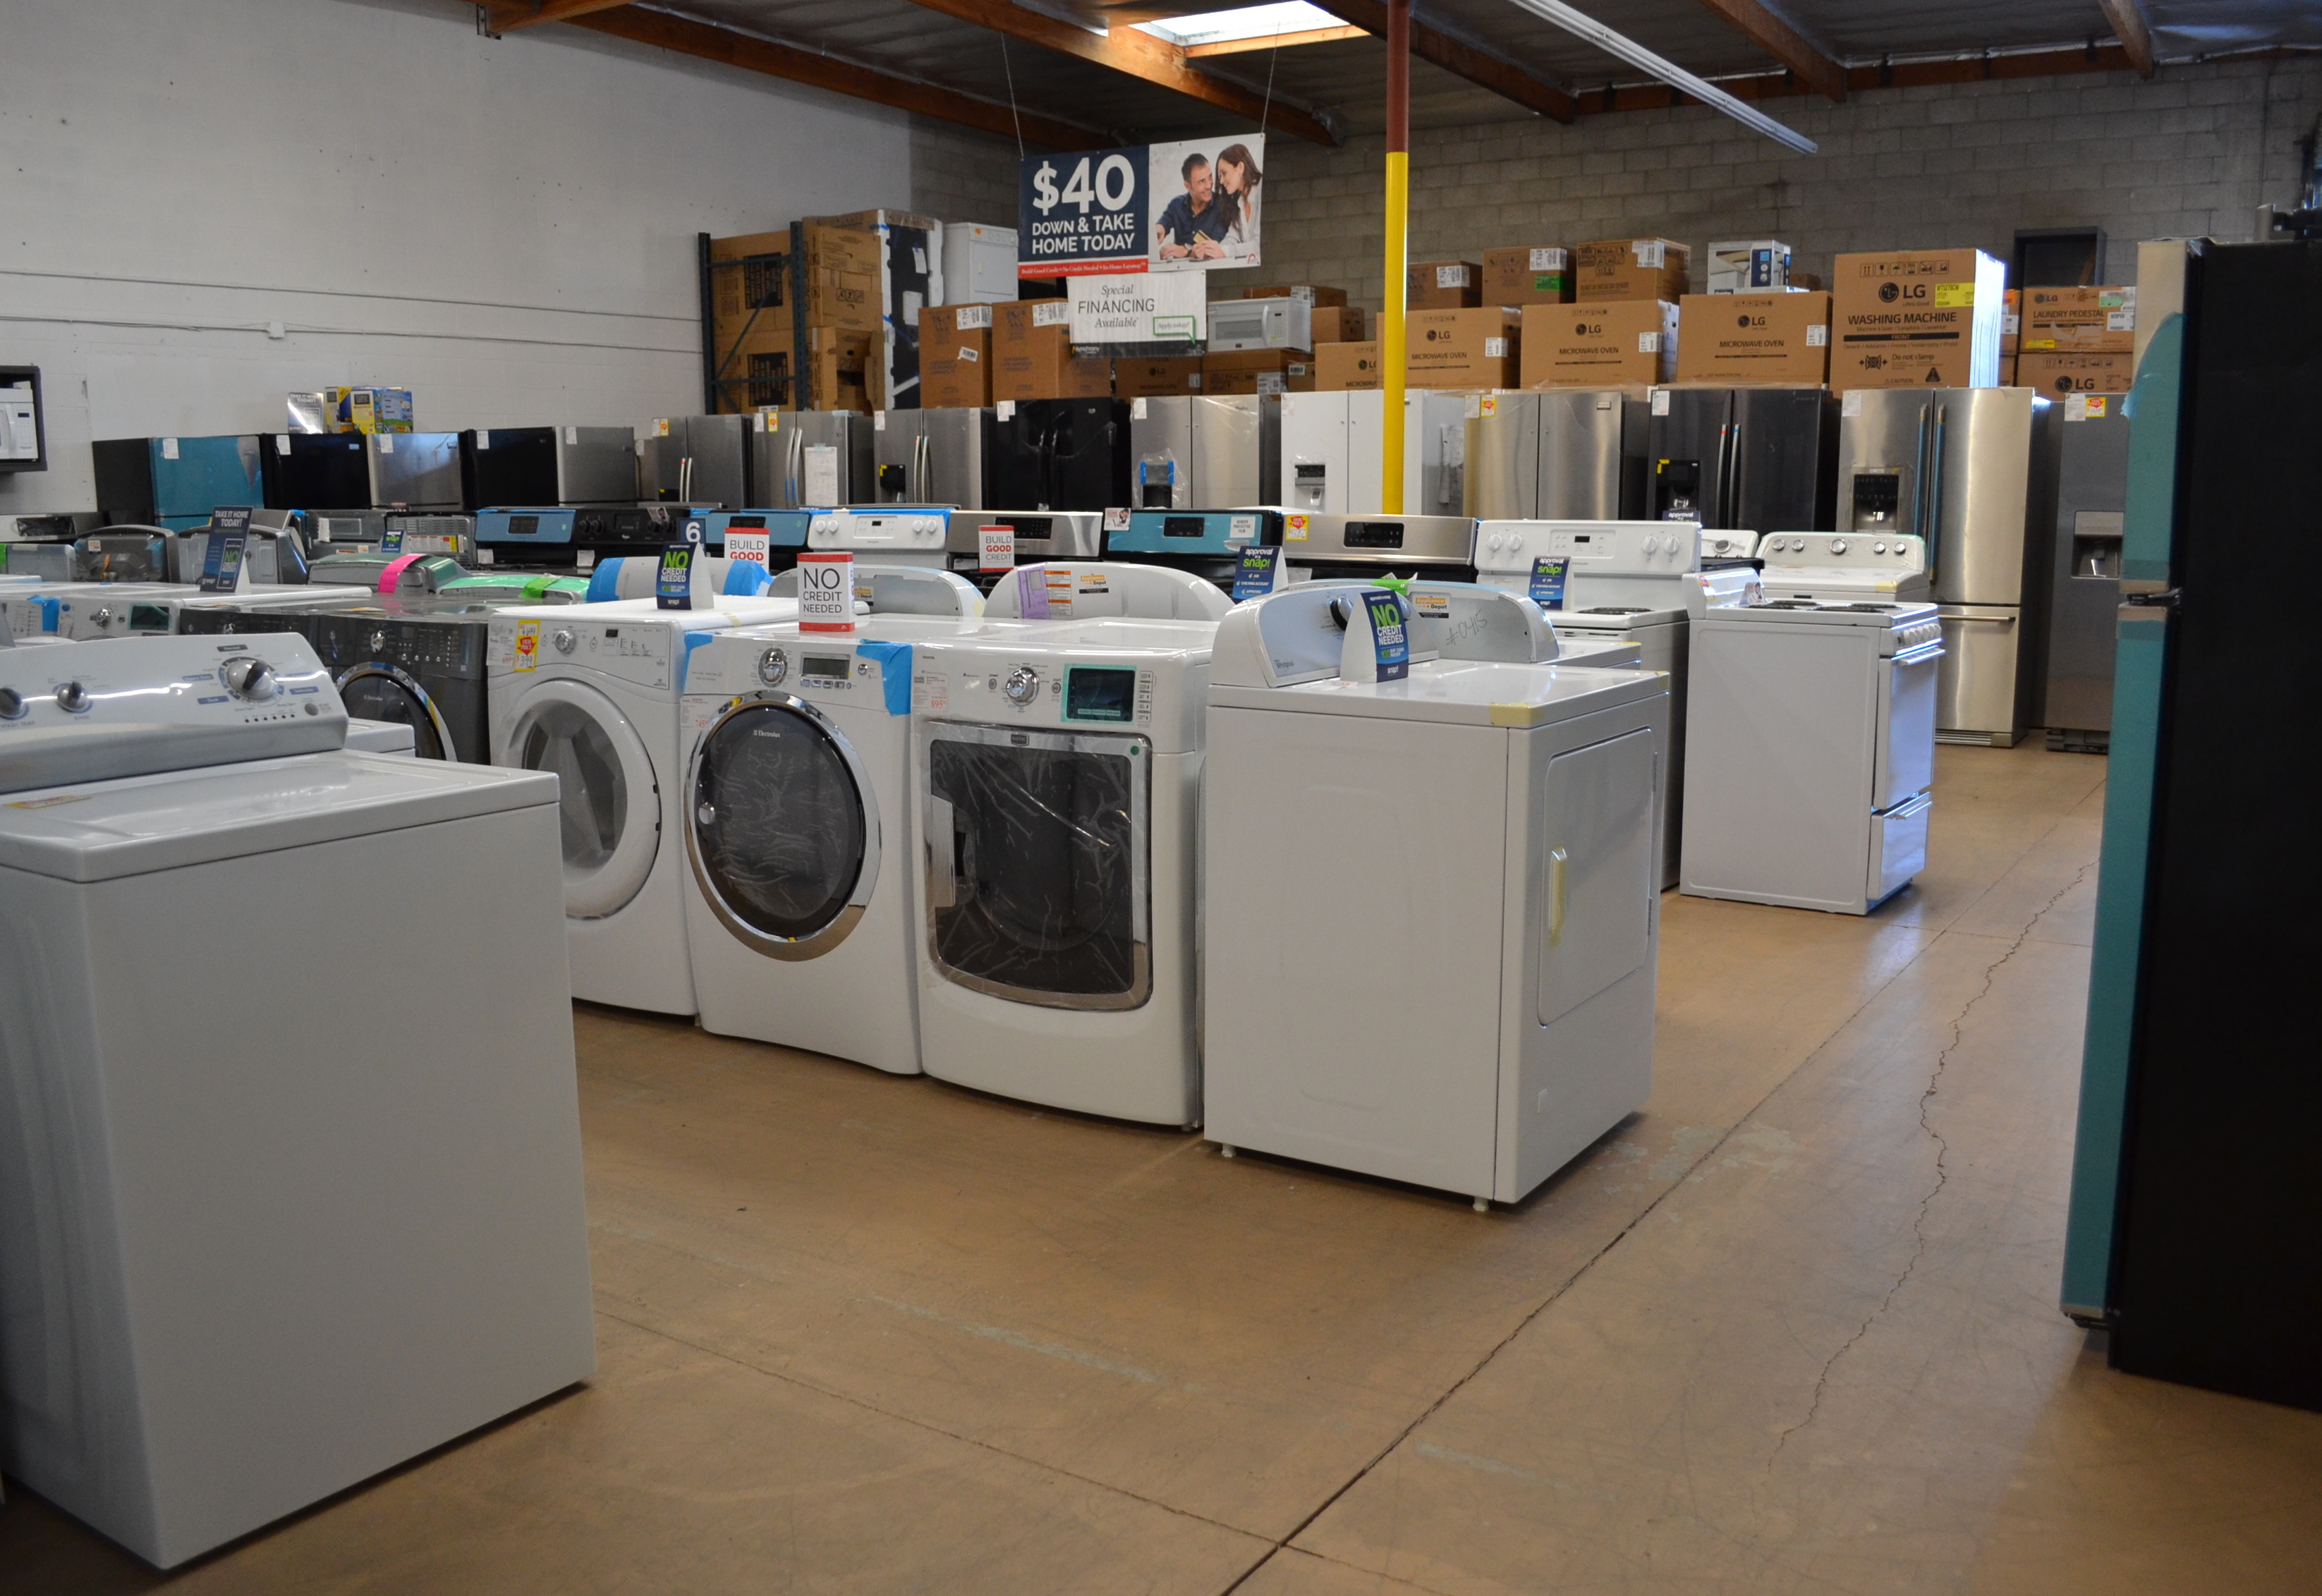 The Appliance Depot image 3